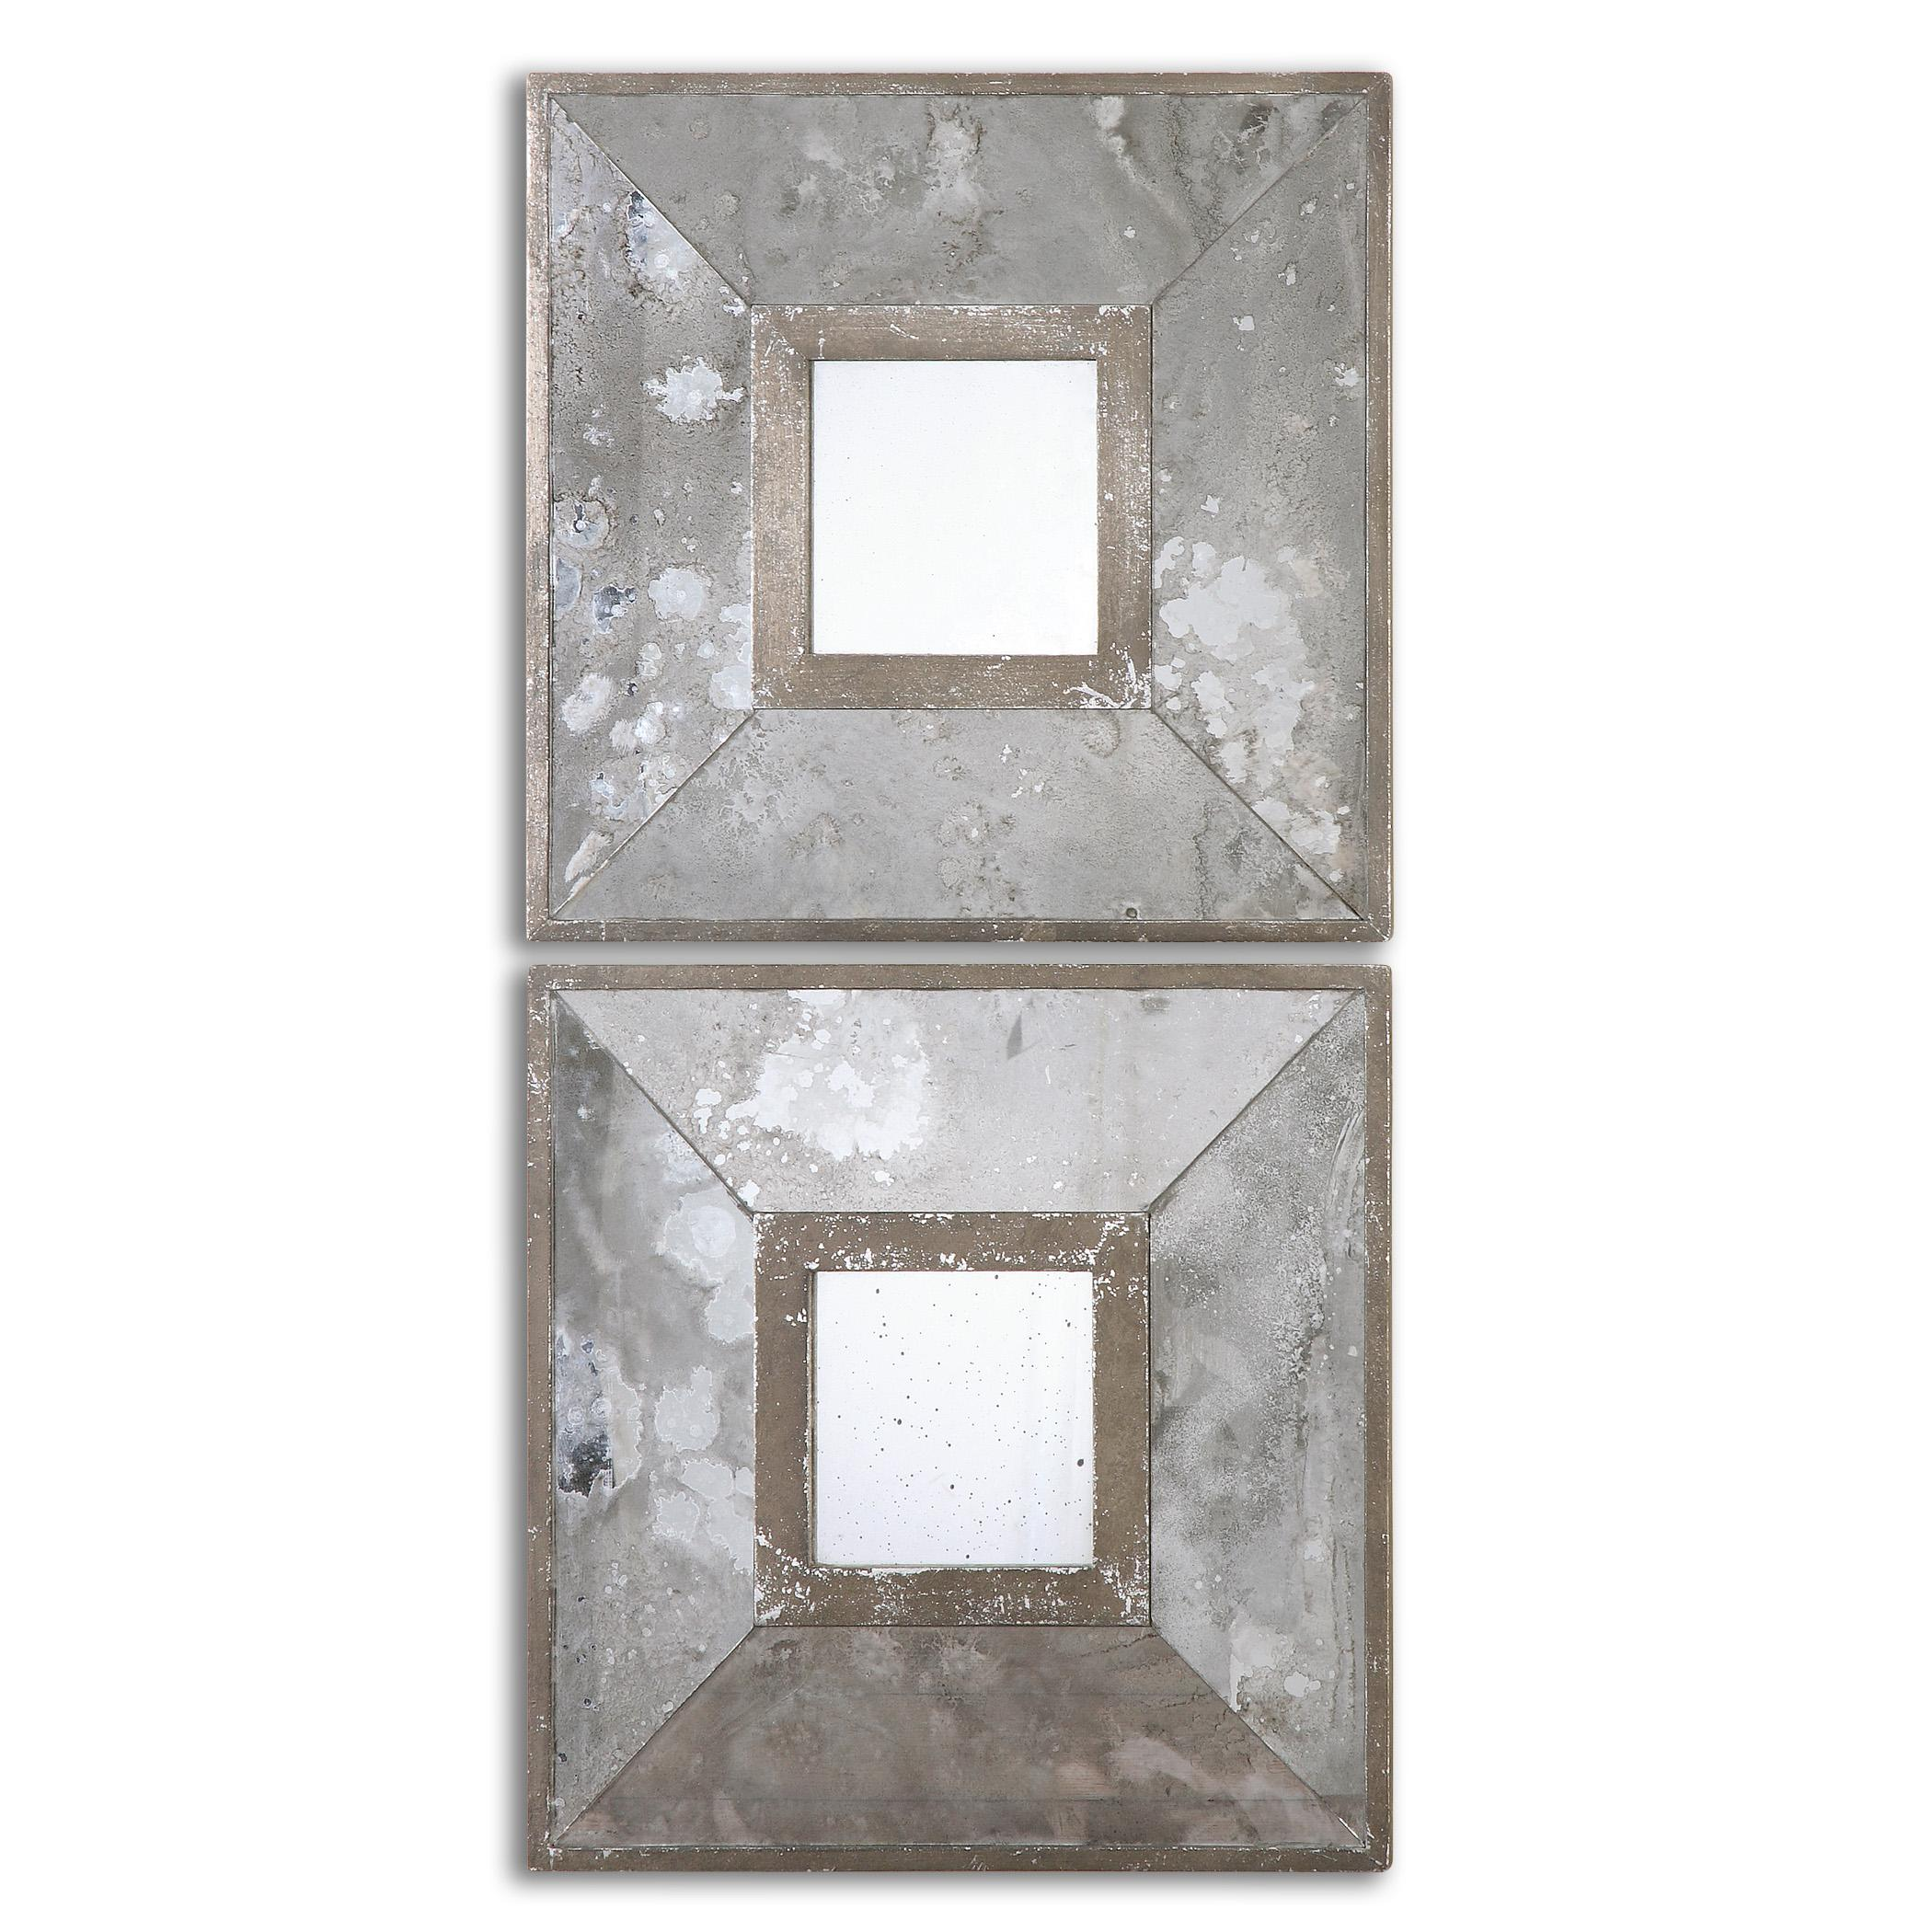 Uttermost Mirrors Gisila Squares Antiqued Mirrors Set of 2 - Item Number: 13886